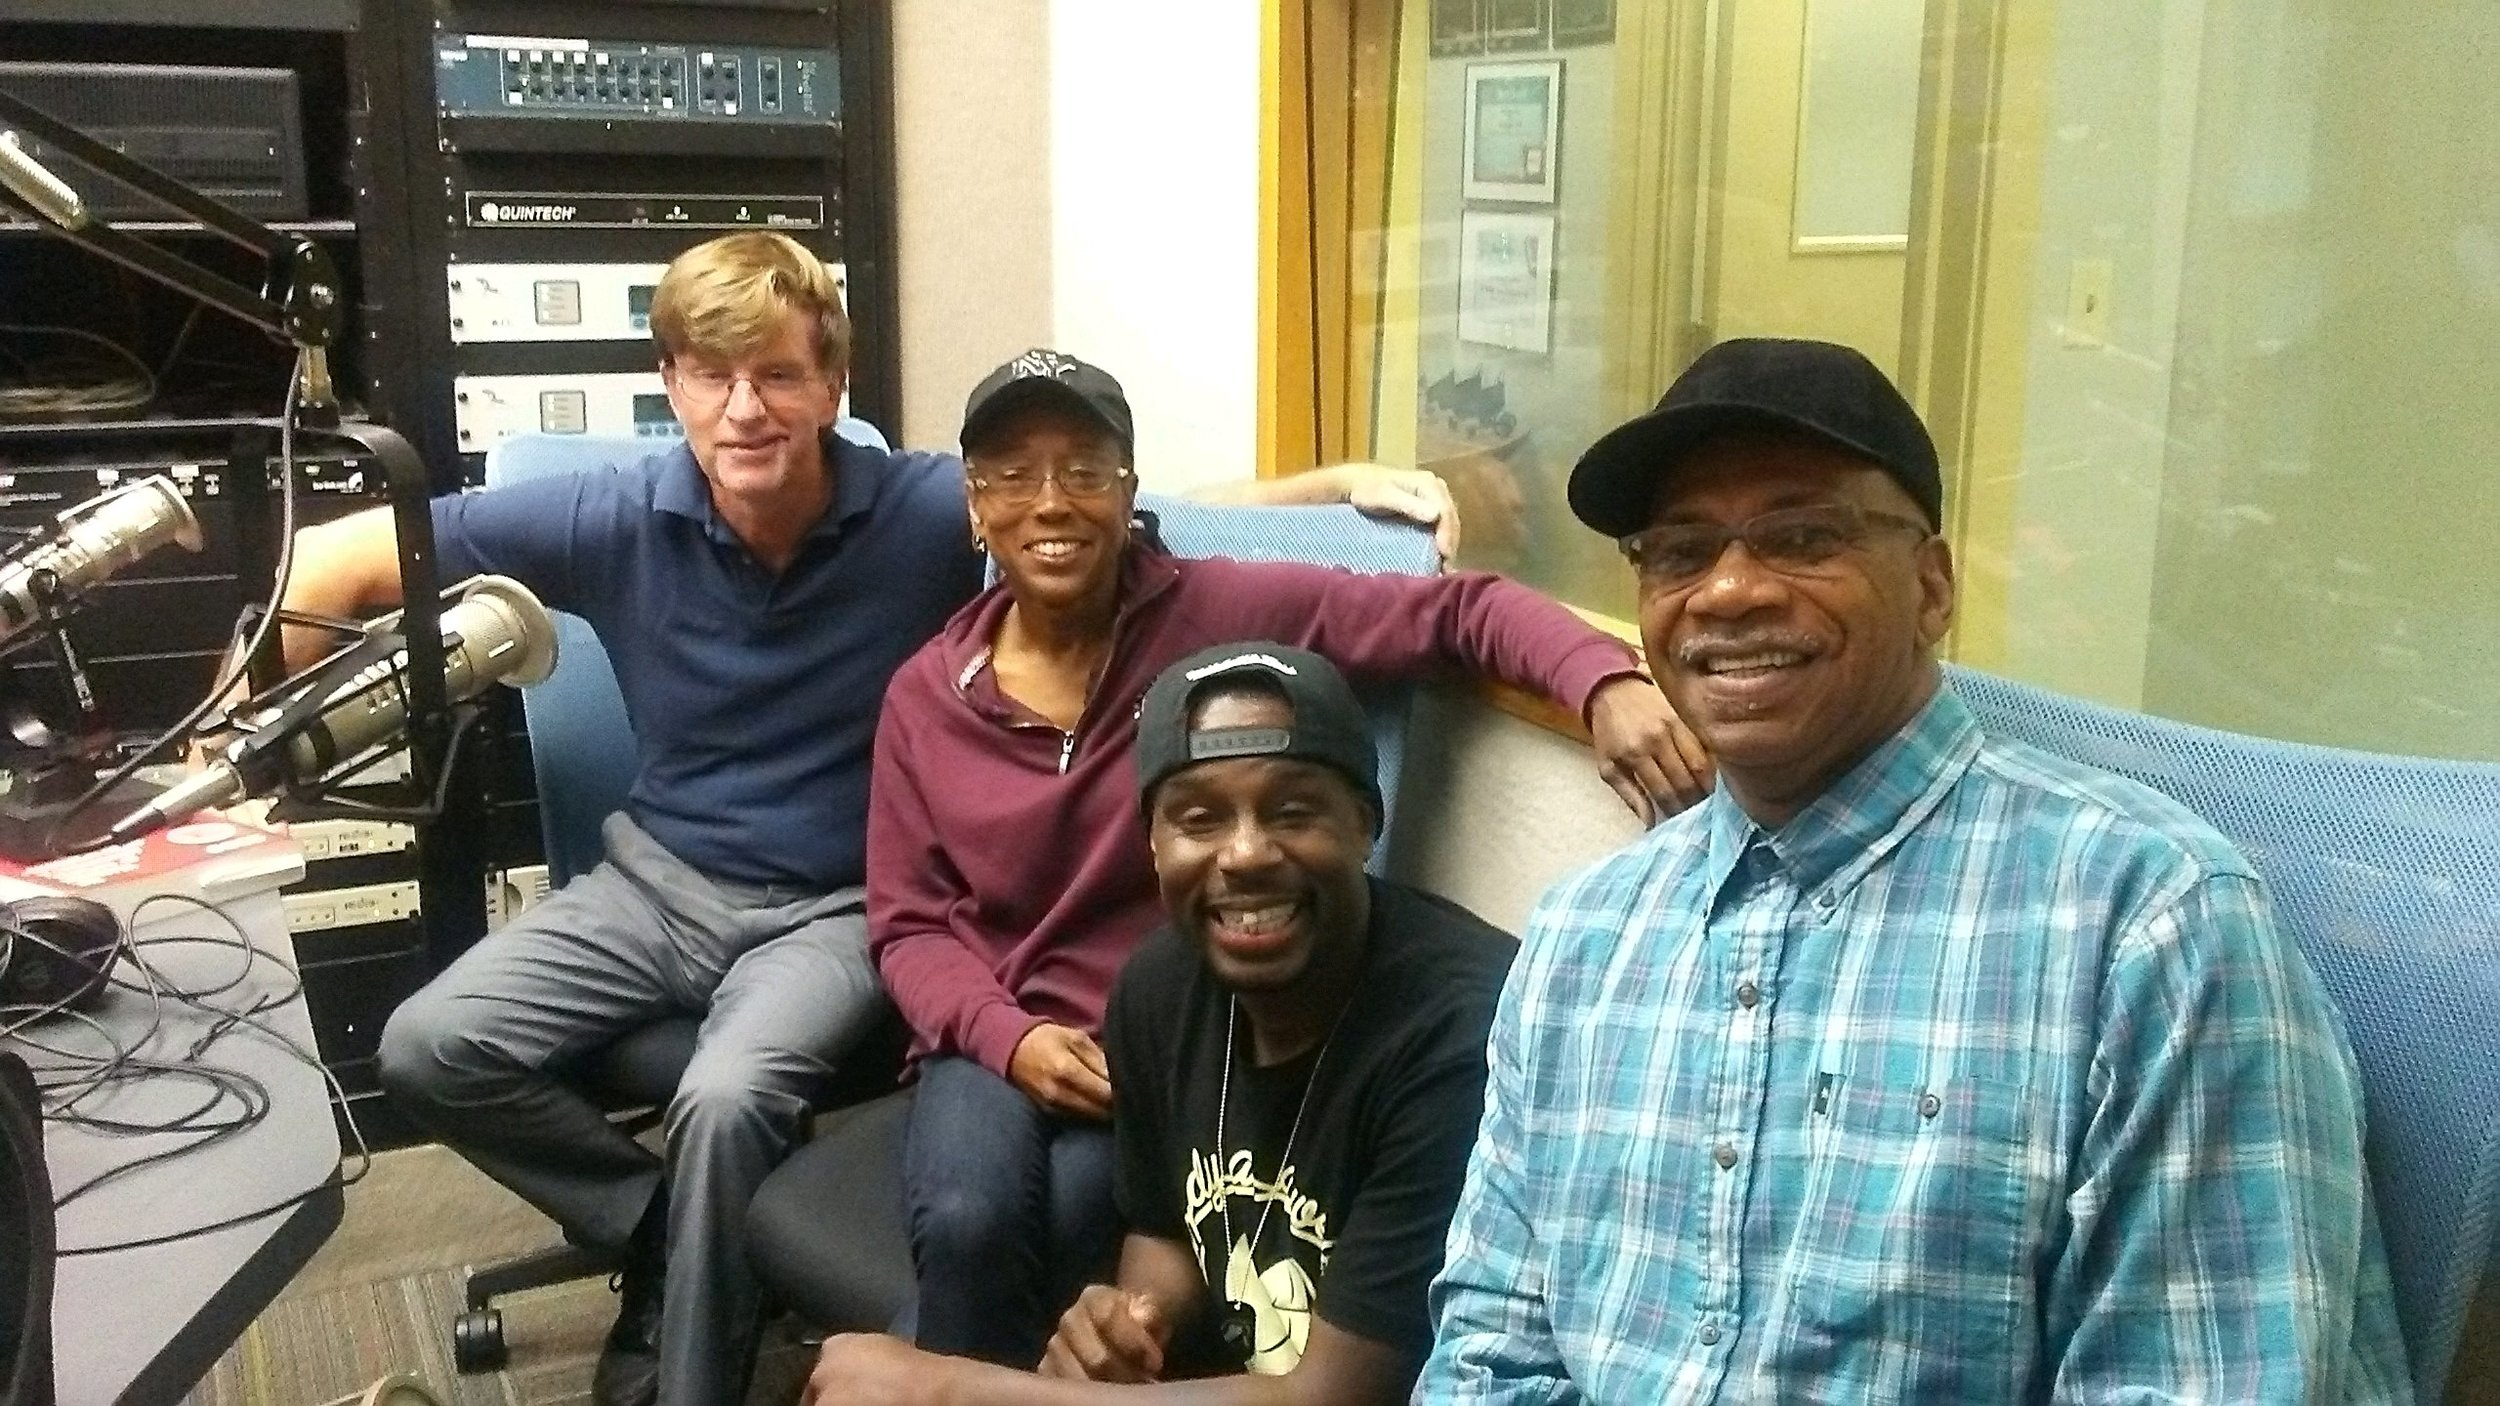 Interview with Kim Deshields, Tim Lovett of  Comedy as a Weapon  and Sam Jackson from the Northampton Recovery Center. Thanks Bob Flaherty for the opportunity to get the word out!